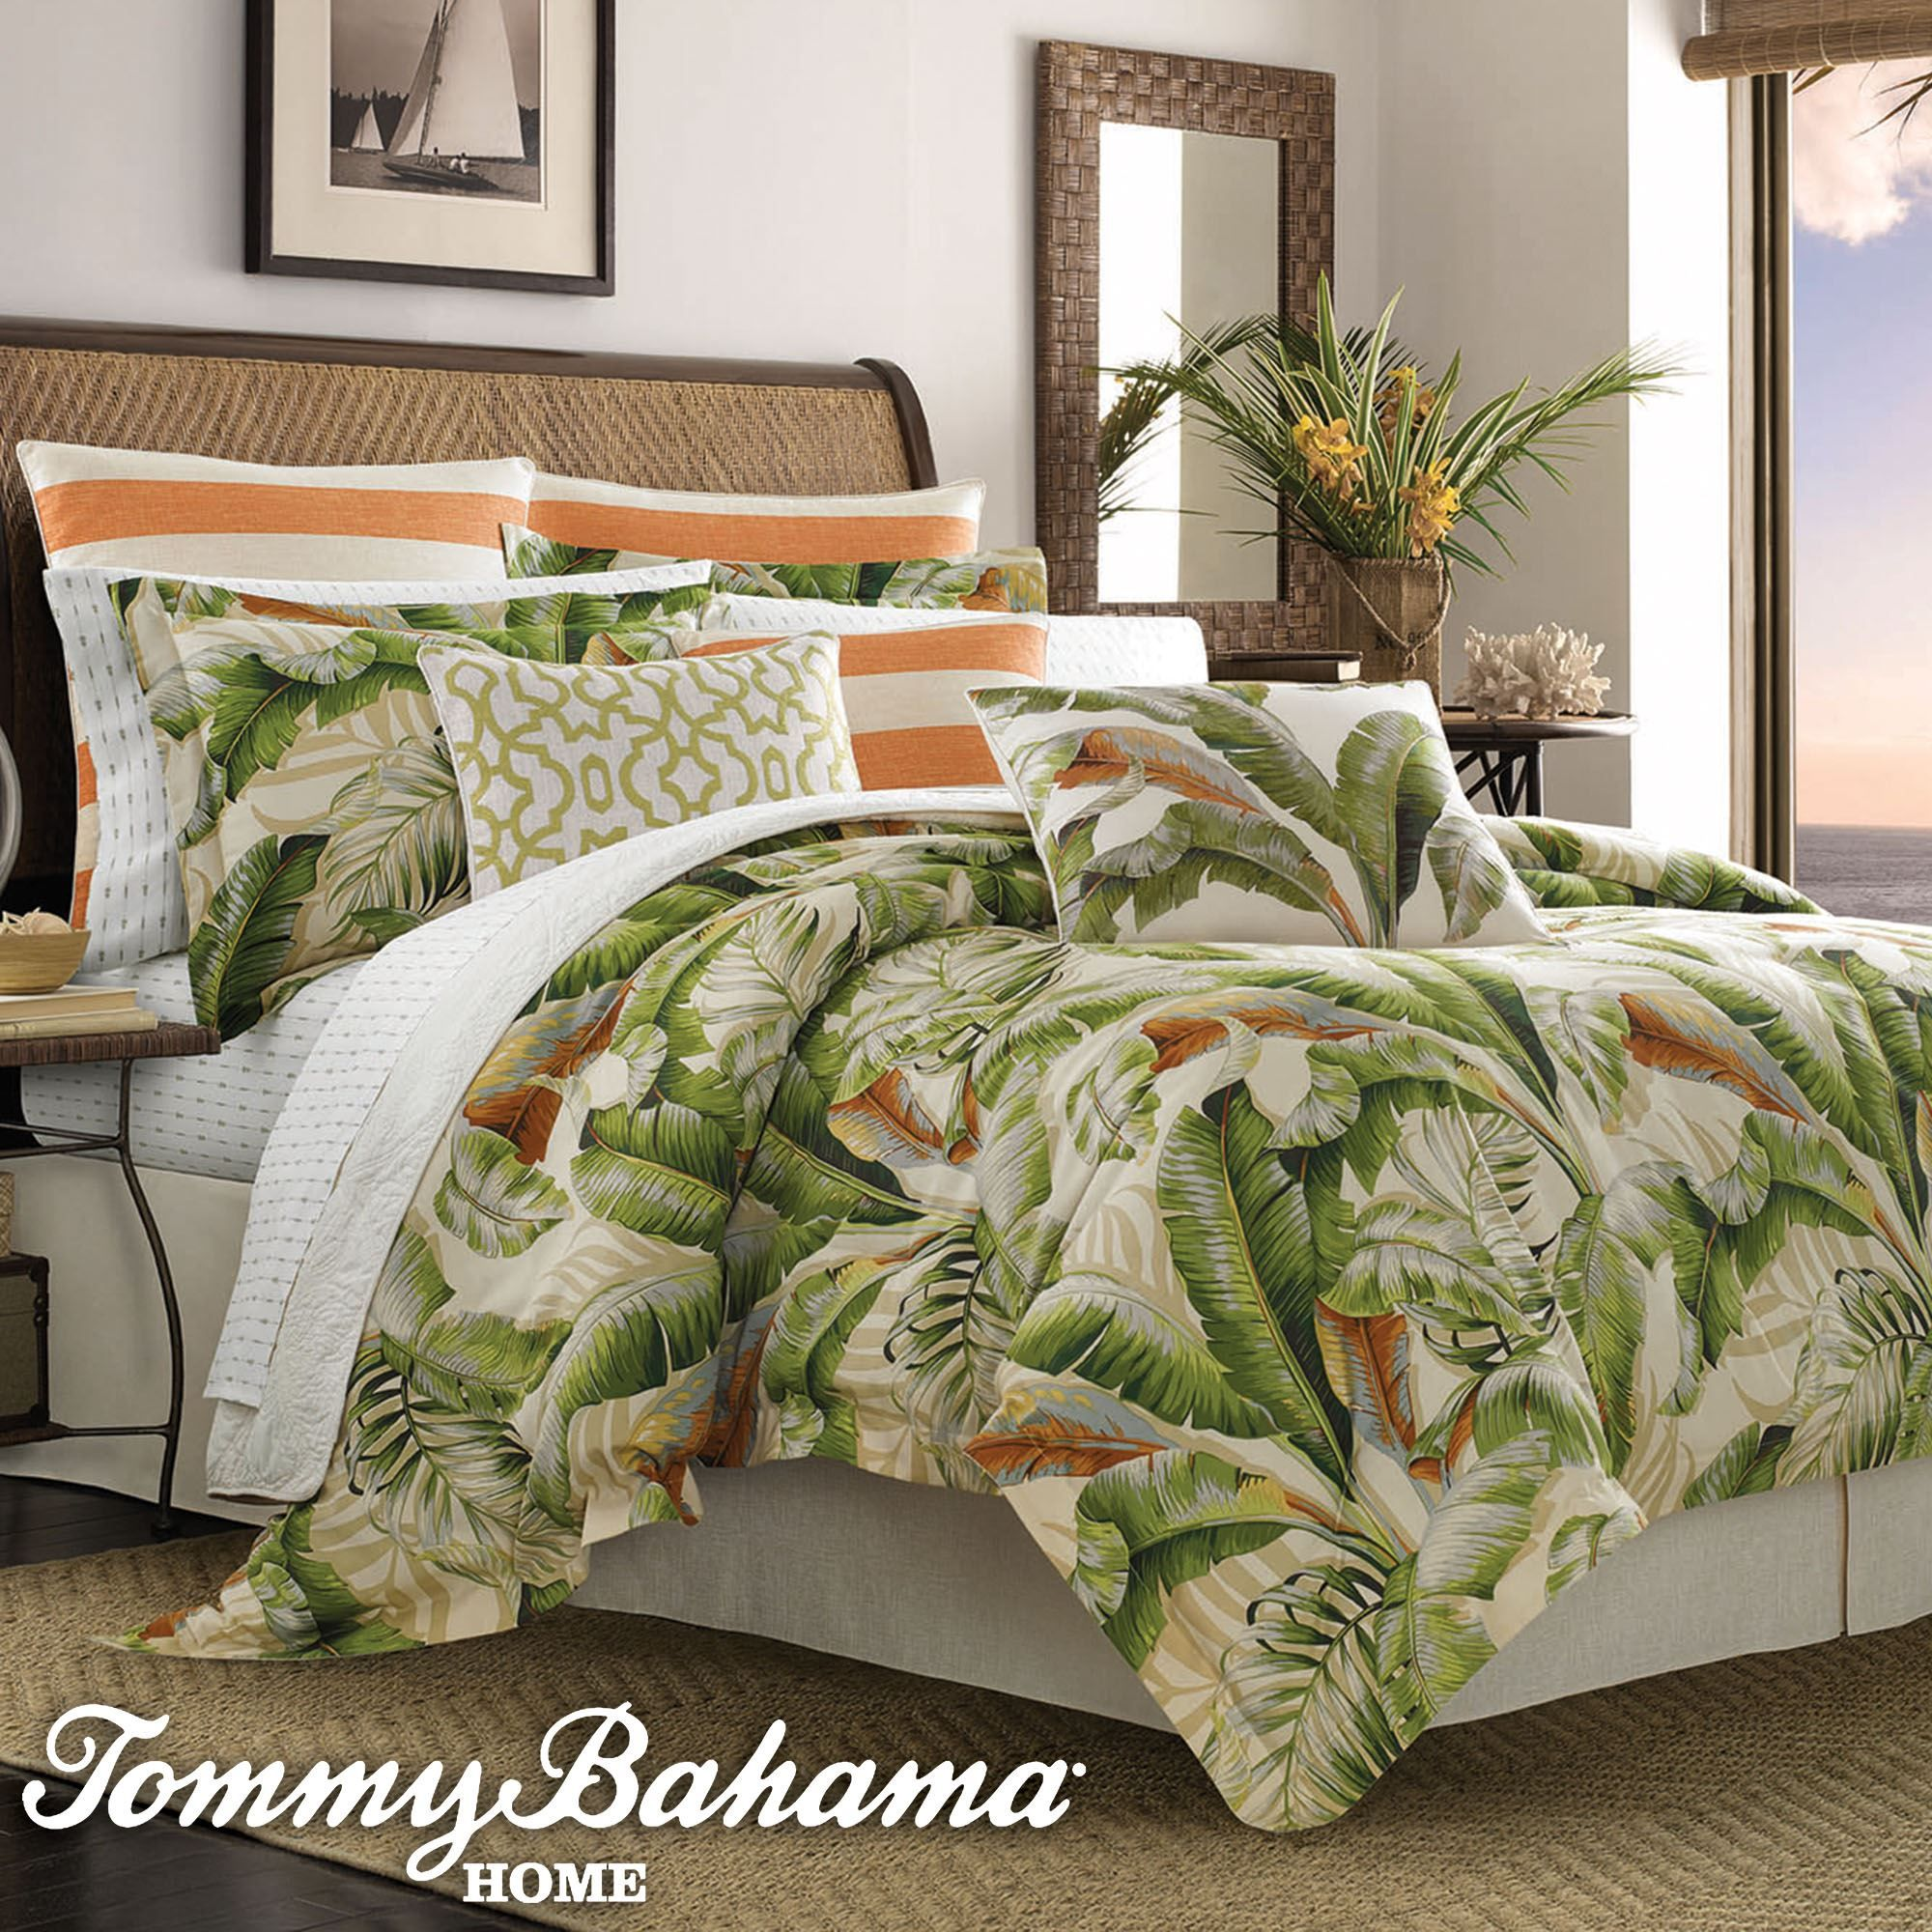 Idea By Linda Yinger On Beautiful Rooms Comforter Sets Tommy